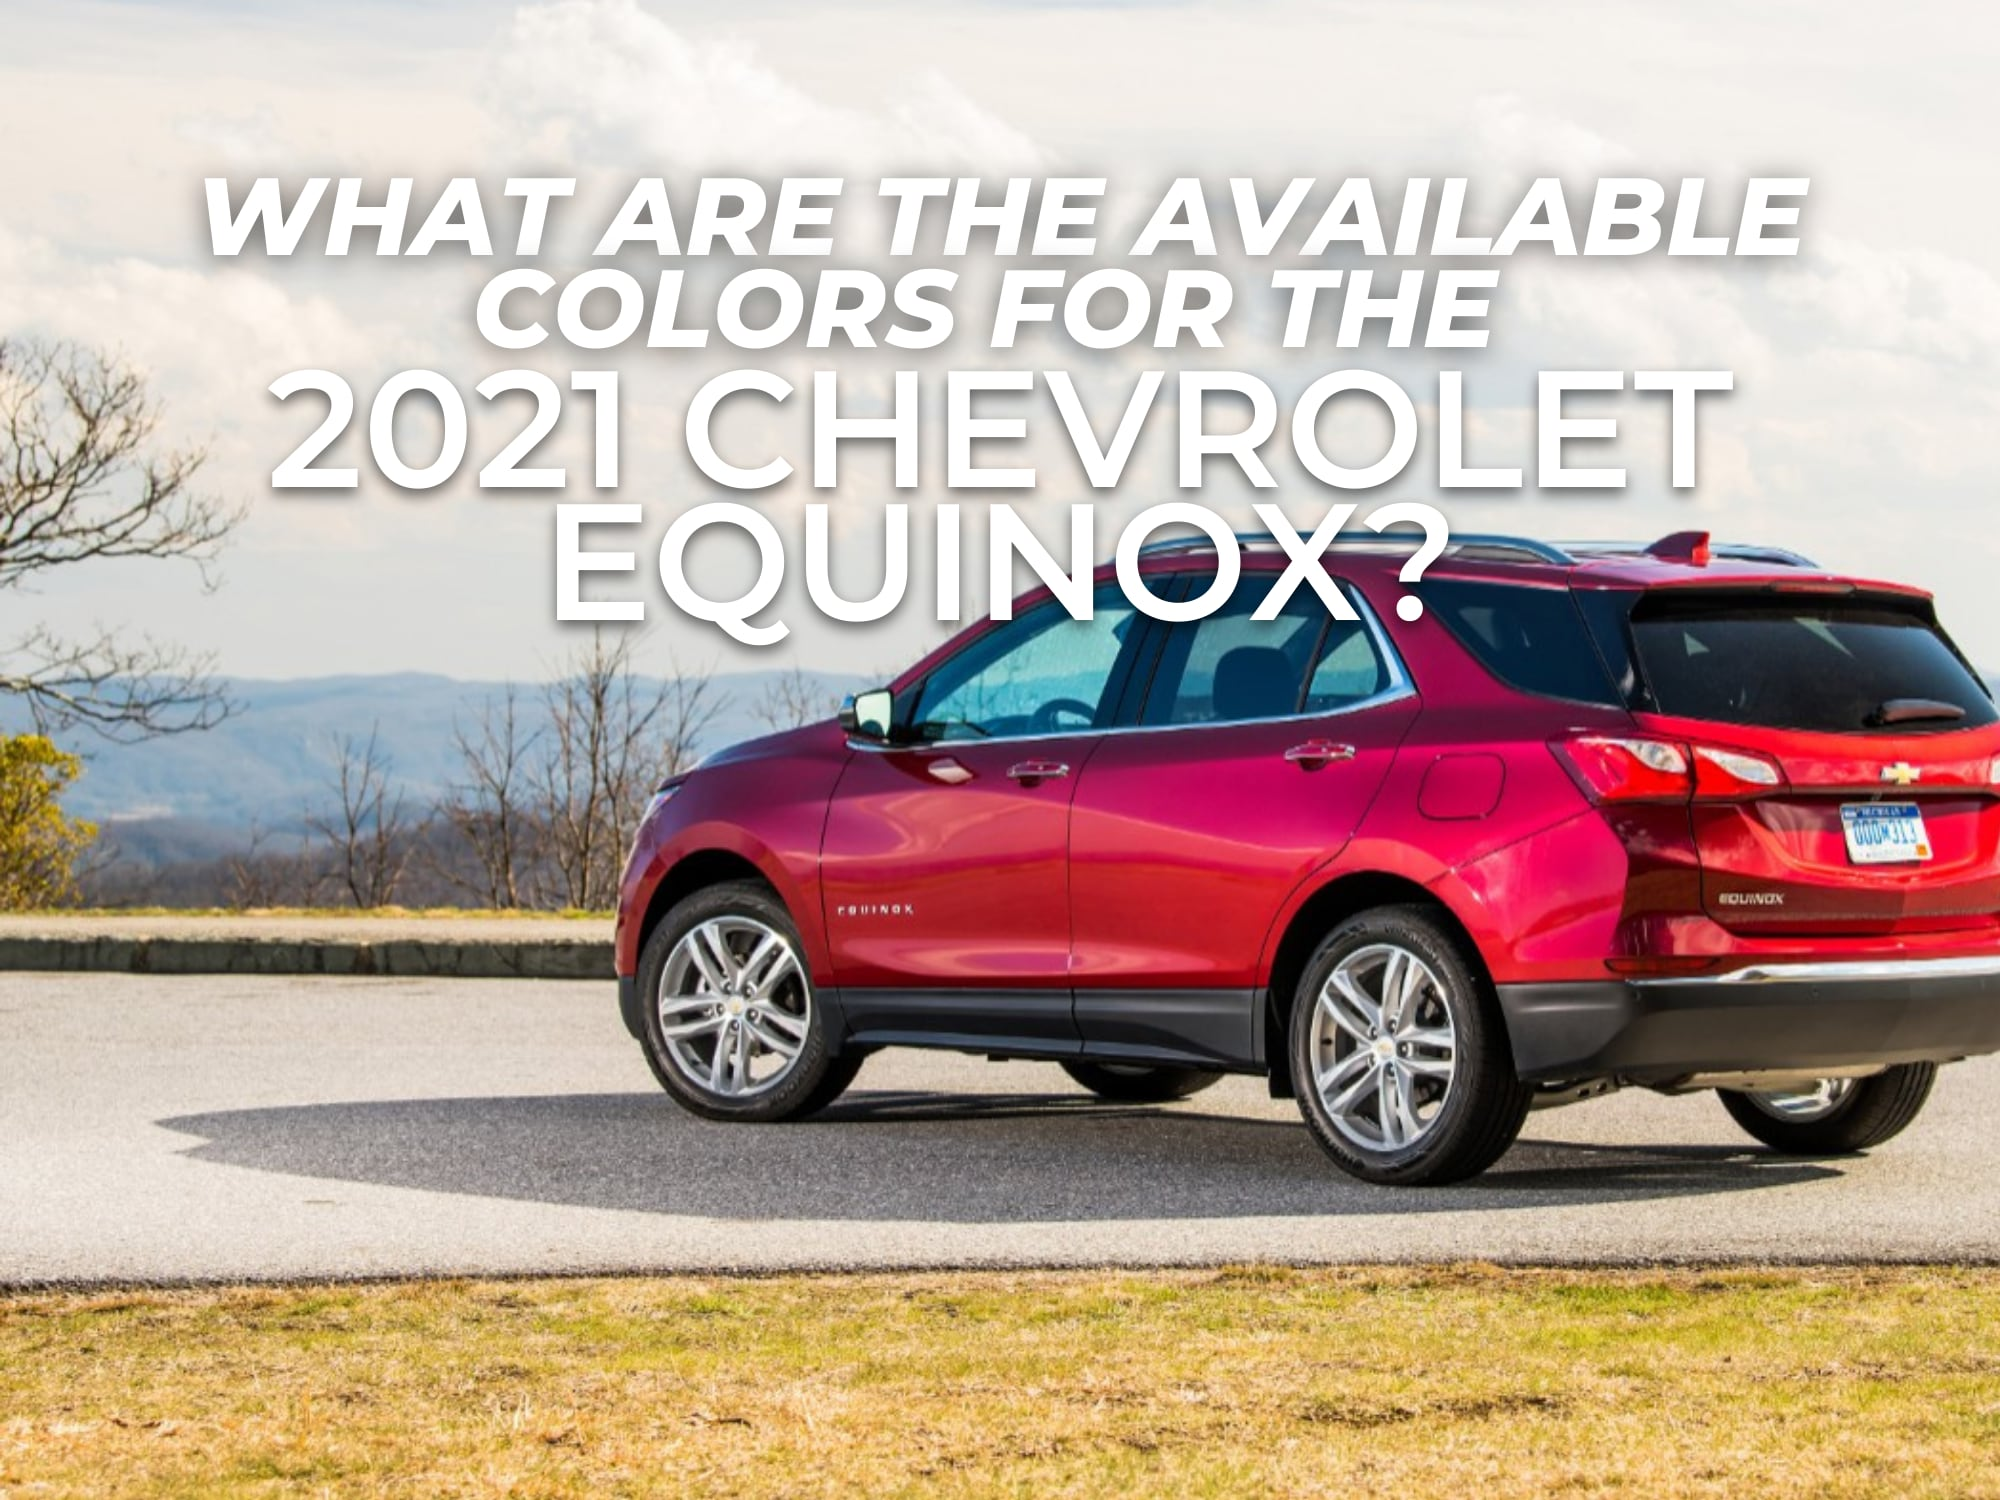 """Red Chevrolet Equinox with """"What Are the available colors for the 2021 Chevrolet Equinox"""" words in white"""